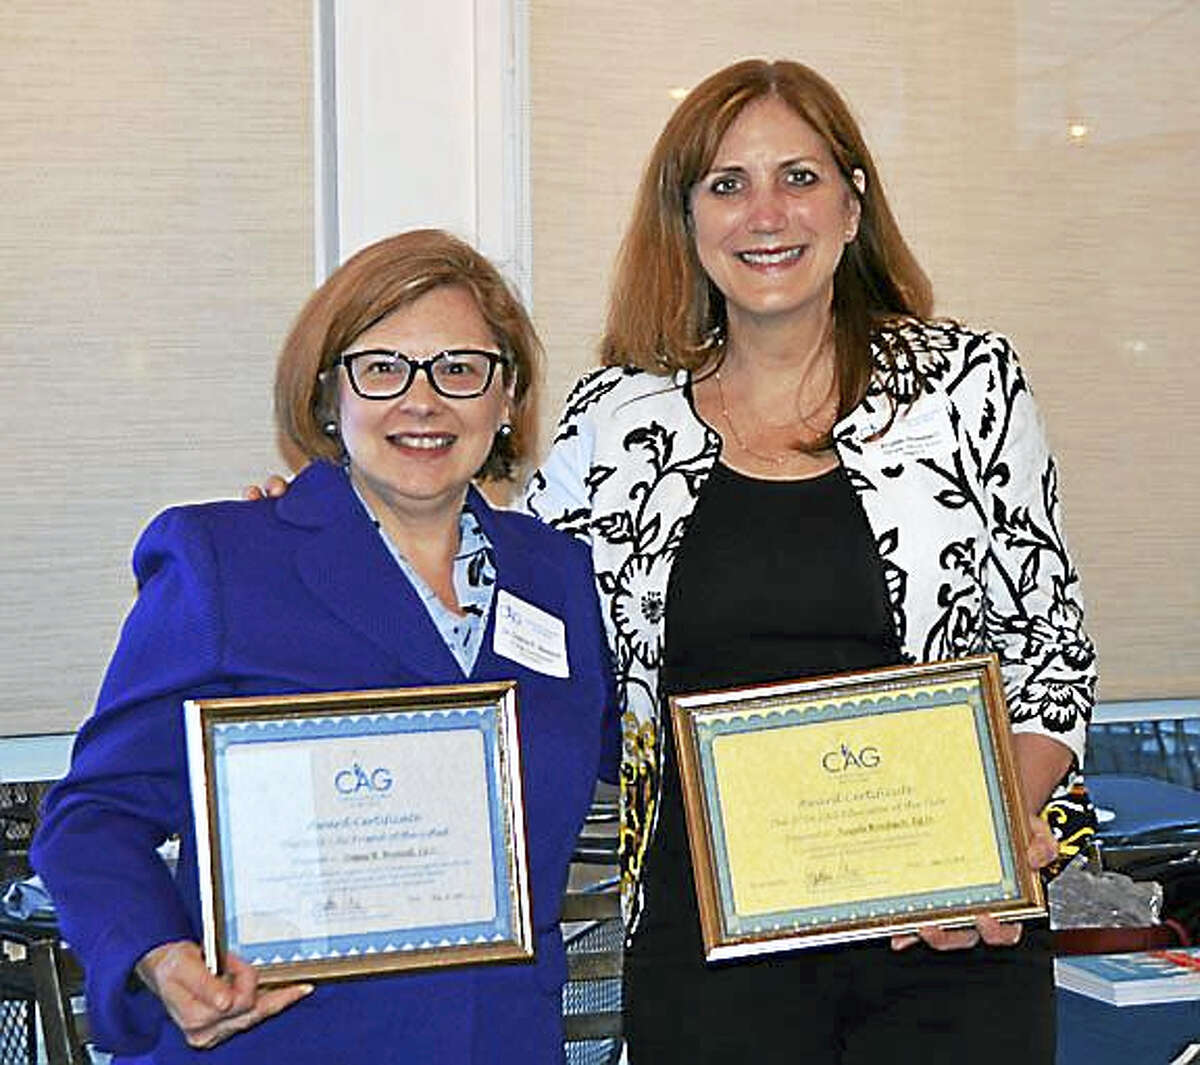 Photo 4 – L to R - Commissioner of the Connecticut State Department of Education Dr. Dianna R. Wentzell holds the Connecticut Association for the Gifted (CAG) 2016 Friend of the Gifted Award, and Dr. Angela Rossbach, Principal of Warren (CT) Elementary School poses with an award given to her by the Connecticut Association for the Gifted (CAG), the 2016 'Educator of the Year'. The awards were given at a ceremony May 10 in Milford, CT. Photo Courtesy of the Connecticut Association for the Gifted.